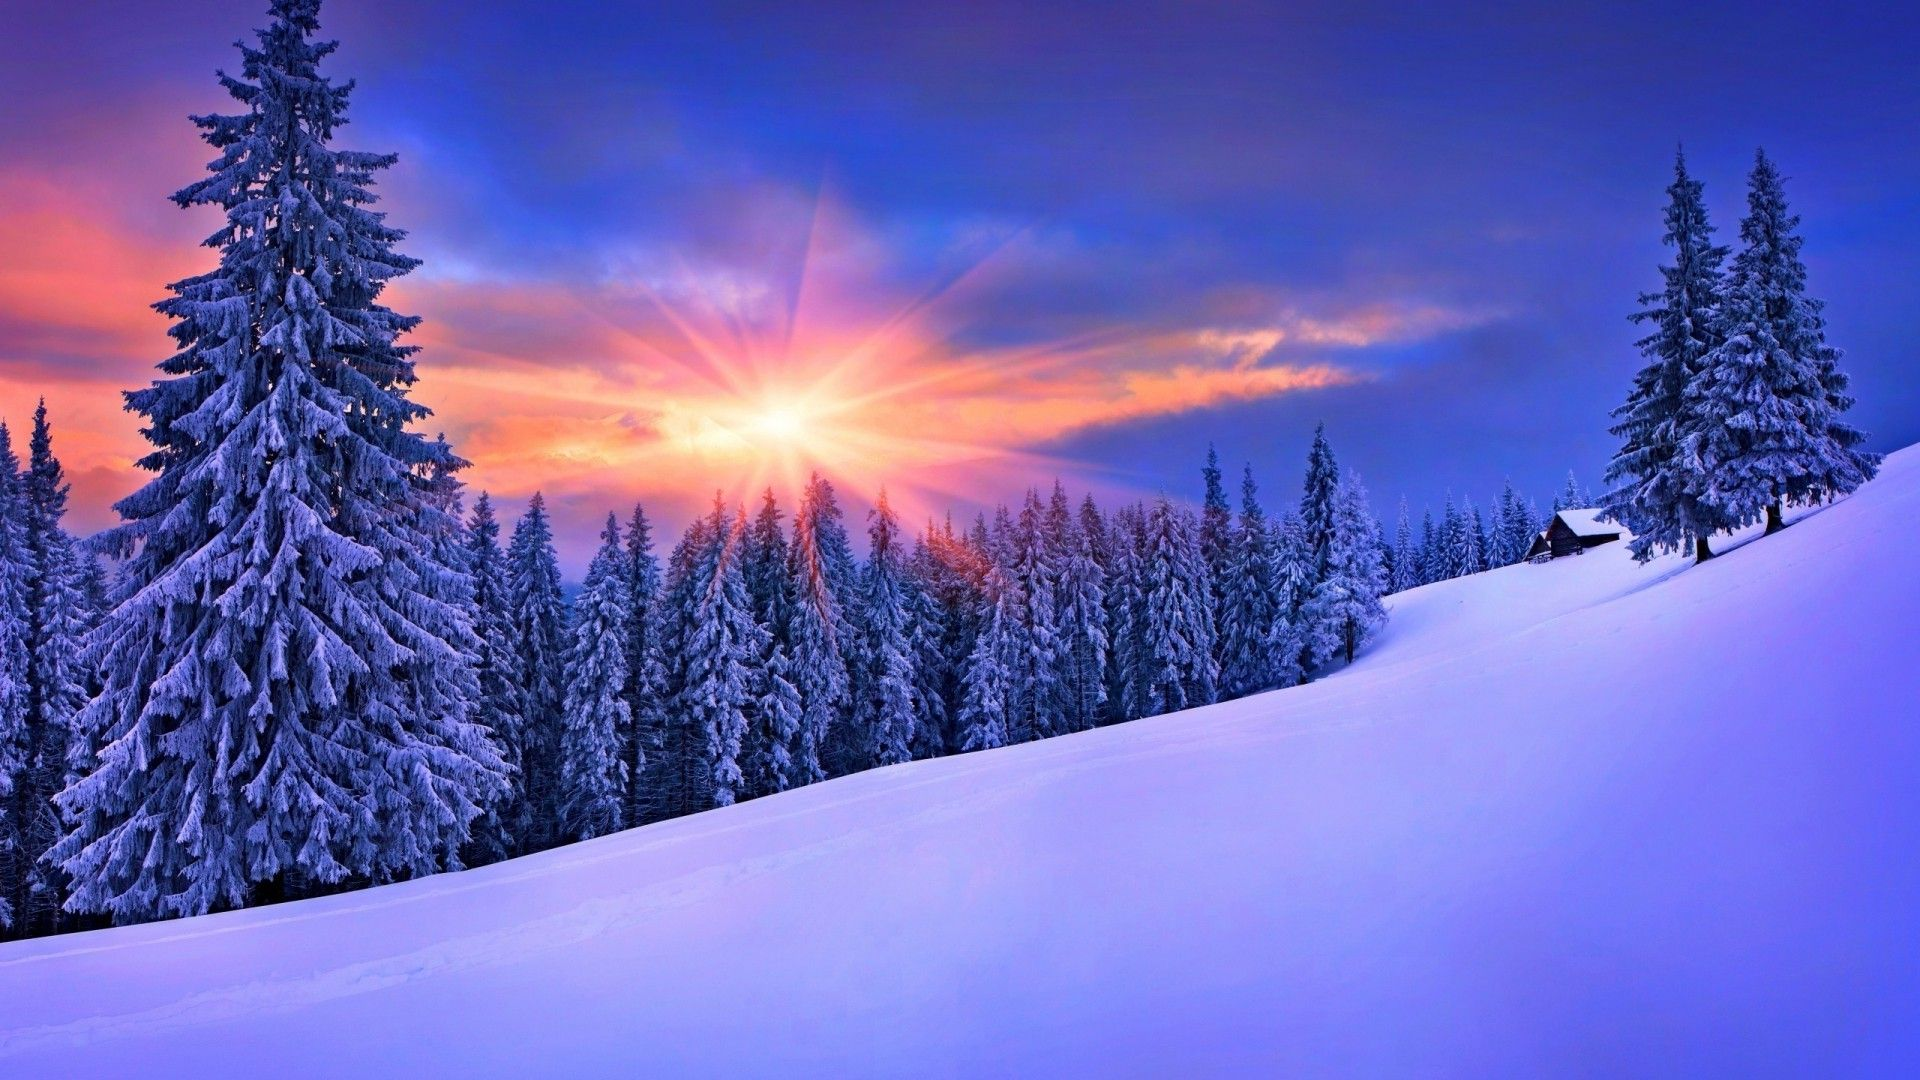 Desktop Wallpaper Winter Landscapes 46 Images Scenery Wallpaper Nature Wallpaper Landscape Wallpaper